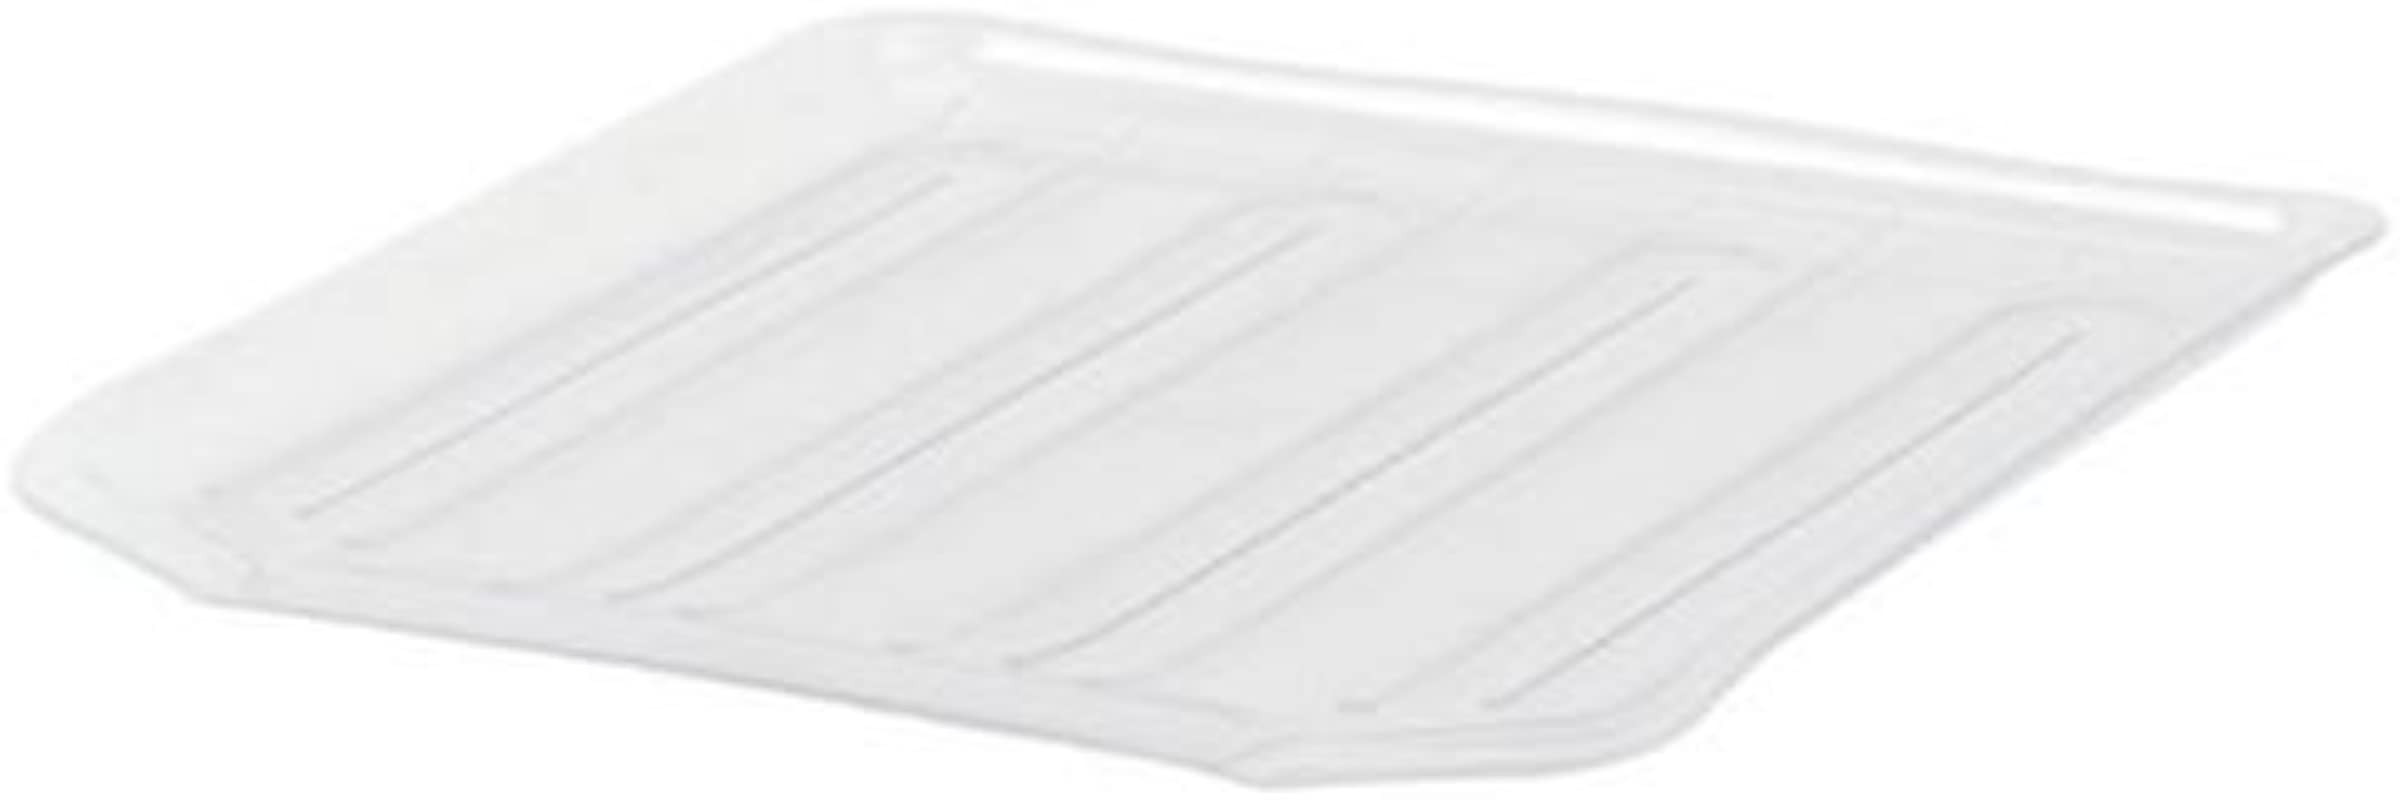 Rubbermaid Antimicrobial Drain Board Large Clear 2 Pack